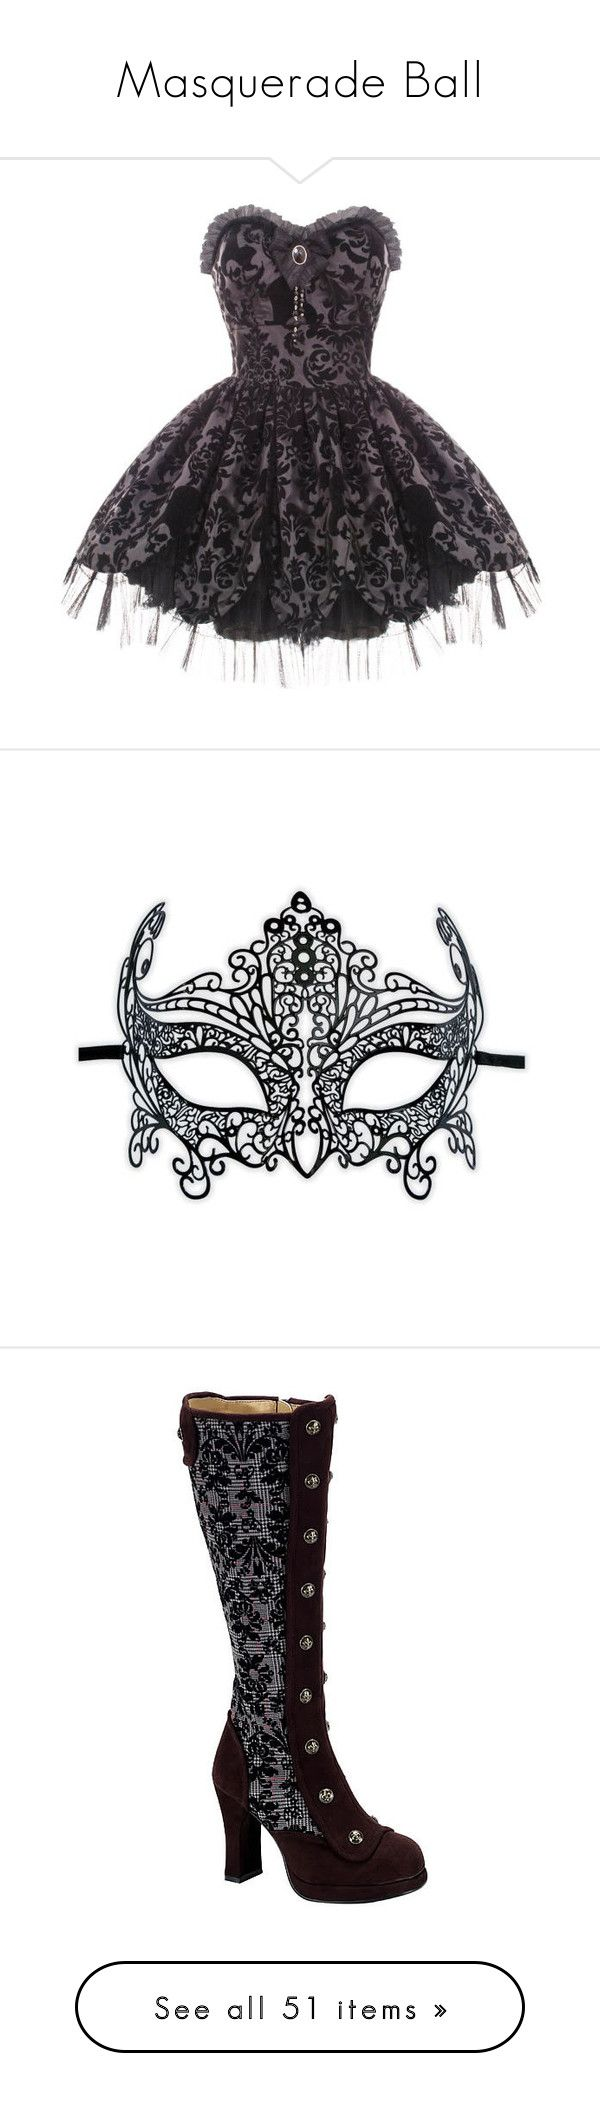 """""""Masquerade Ball"""" by shamallama ❤ liked on Polyvore featuring dresses, vestidos, short dresses, victorian dress, black cocktail dresses, short prom dresses, mini prom dresses, cocktail prom dress, costumes and masks"""